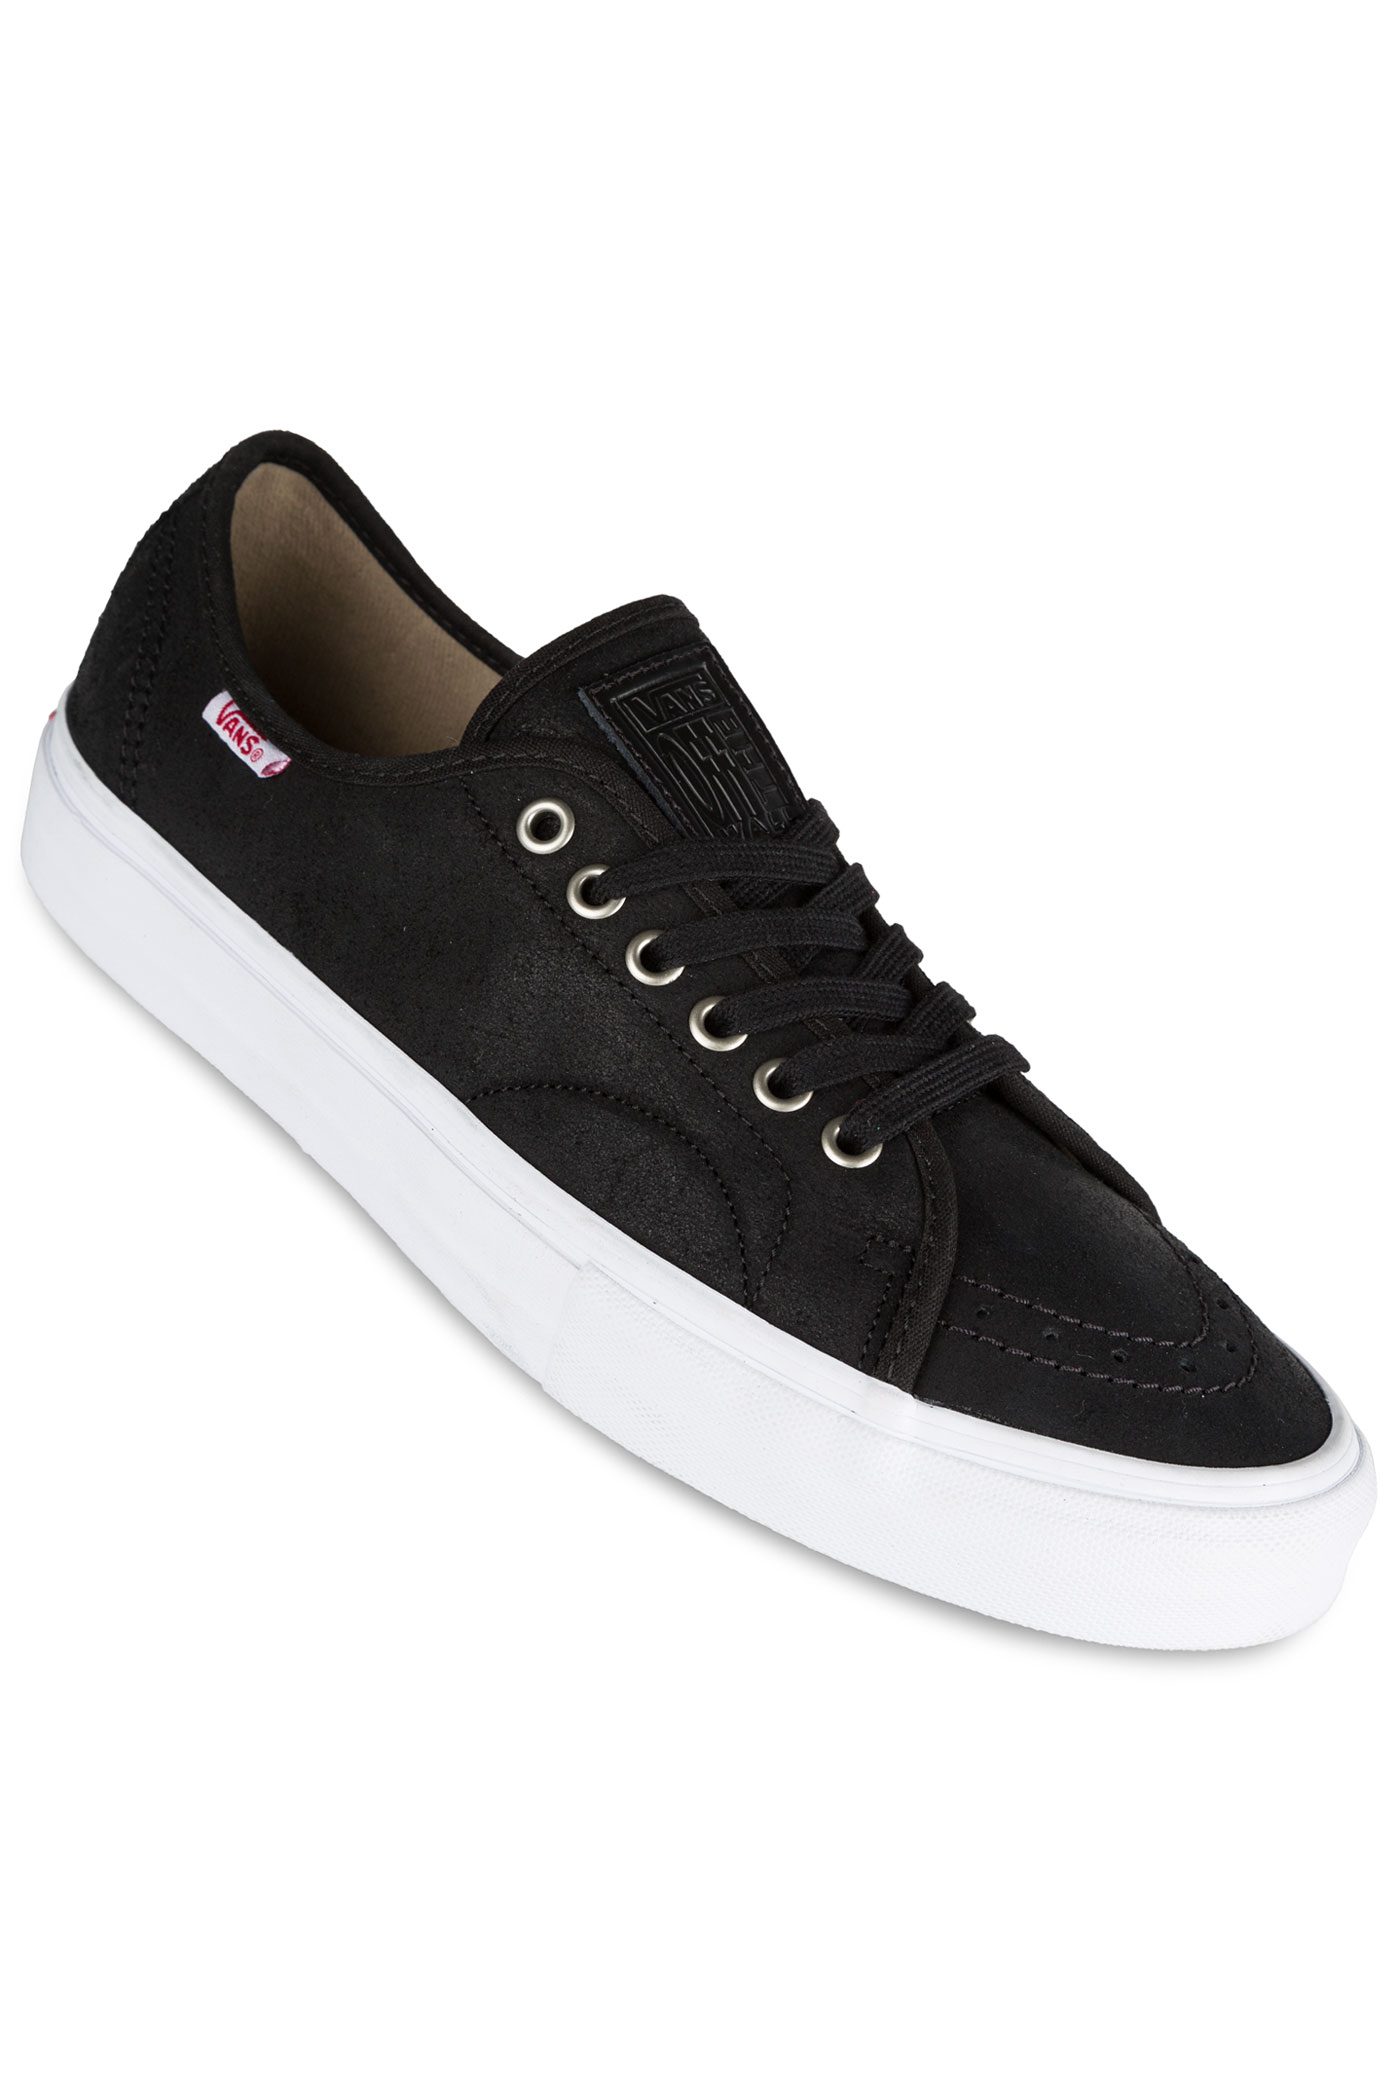 eb8df96192a7 Vans AV Classic Shoe (oiled black white) buy at skatedeluxe